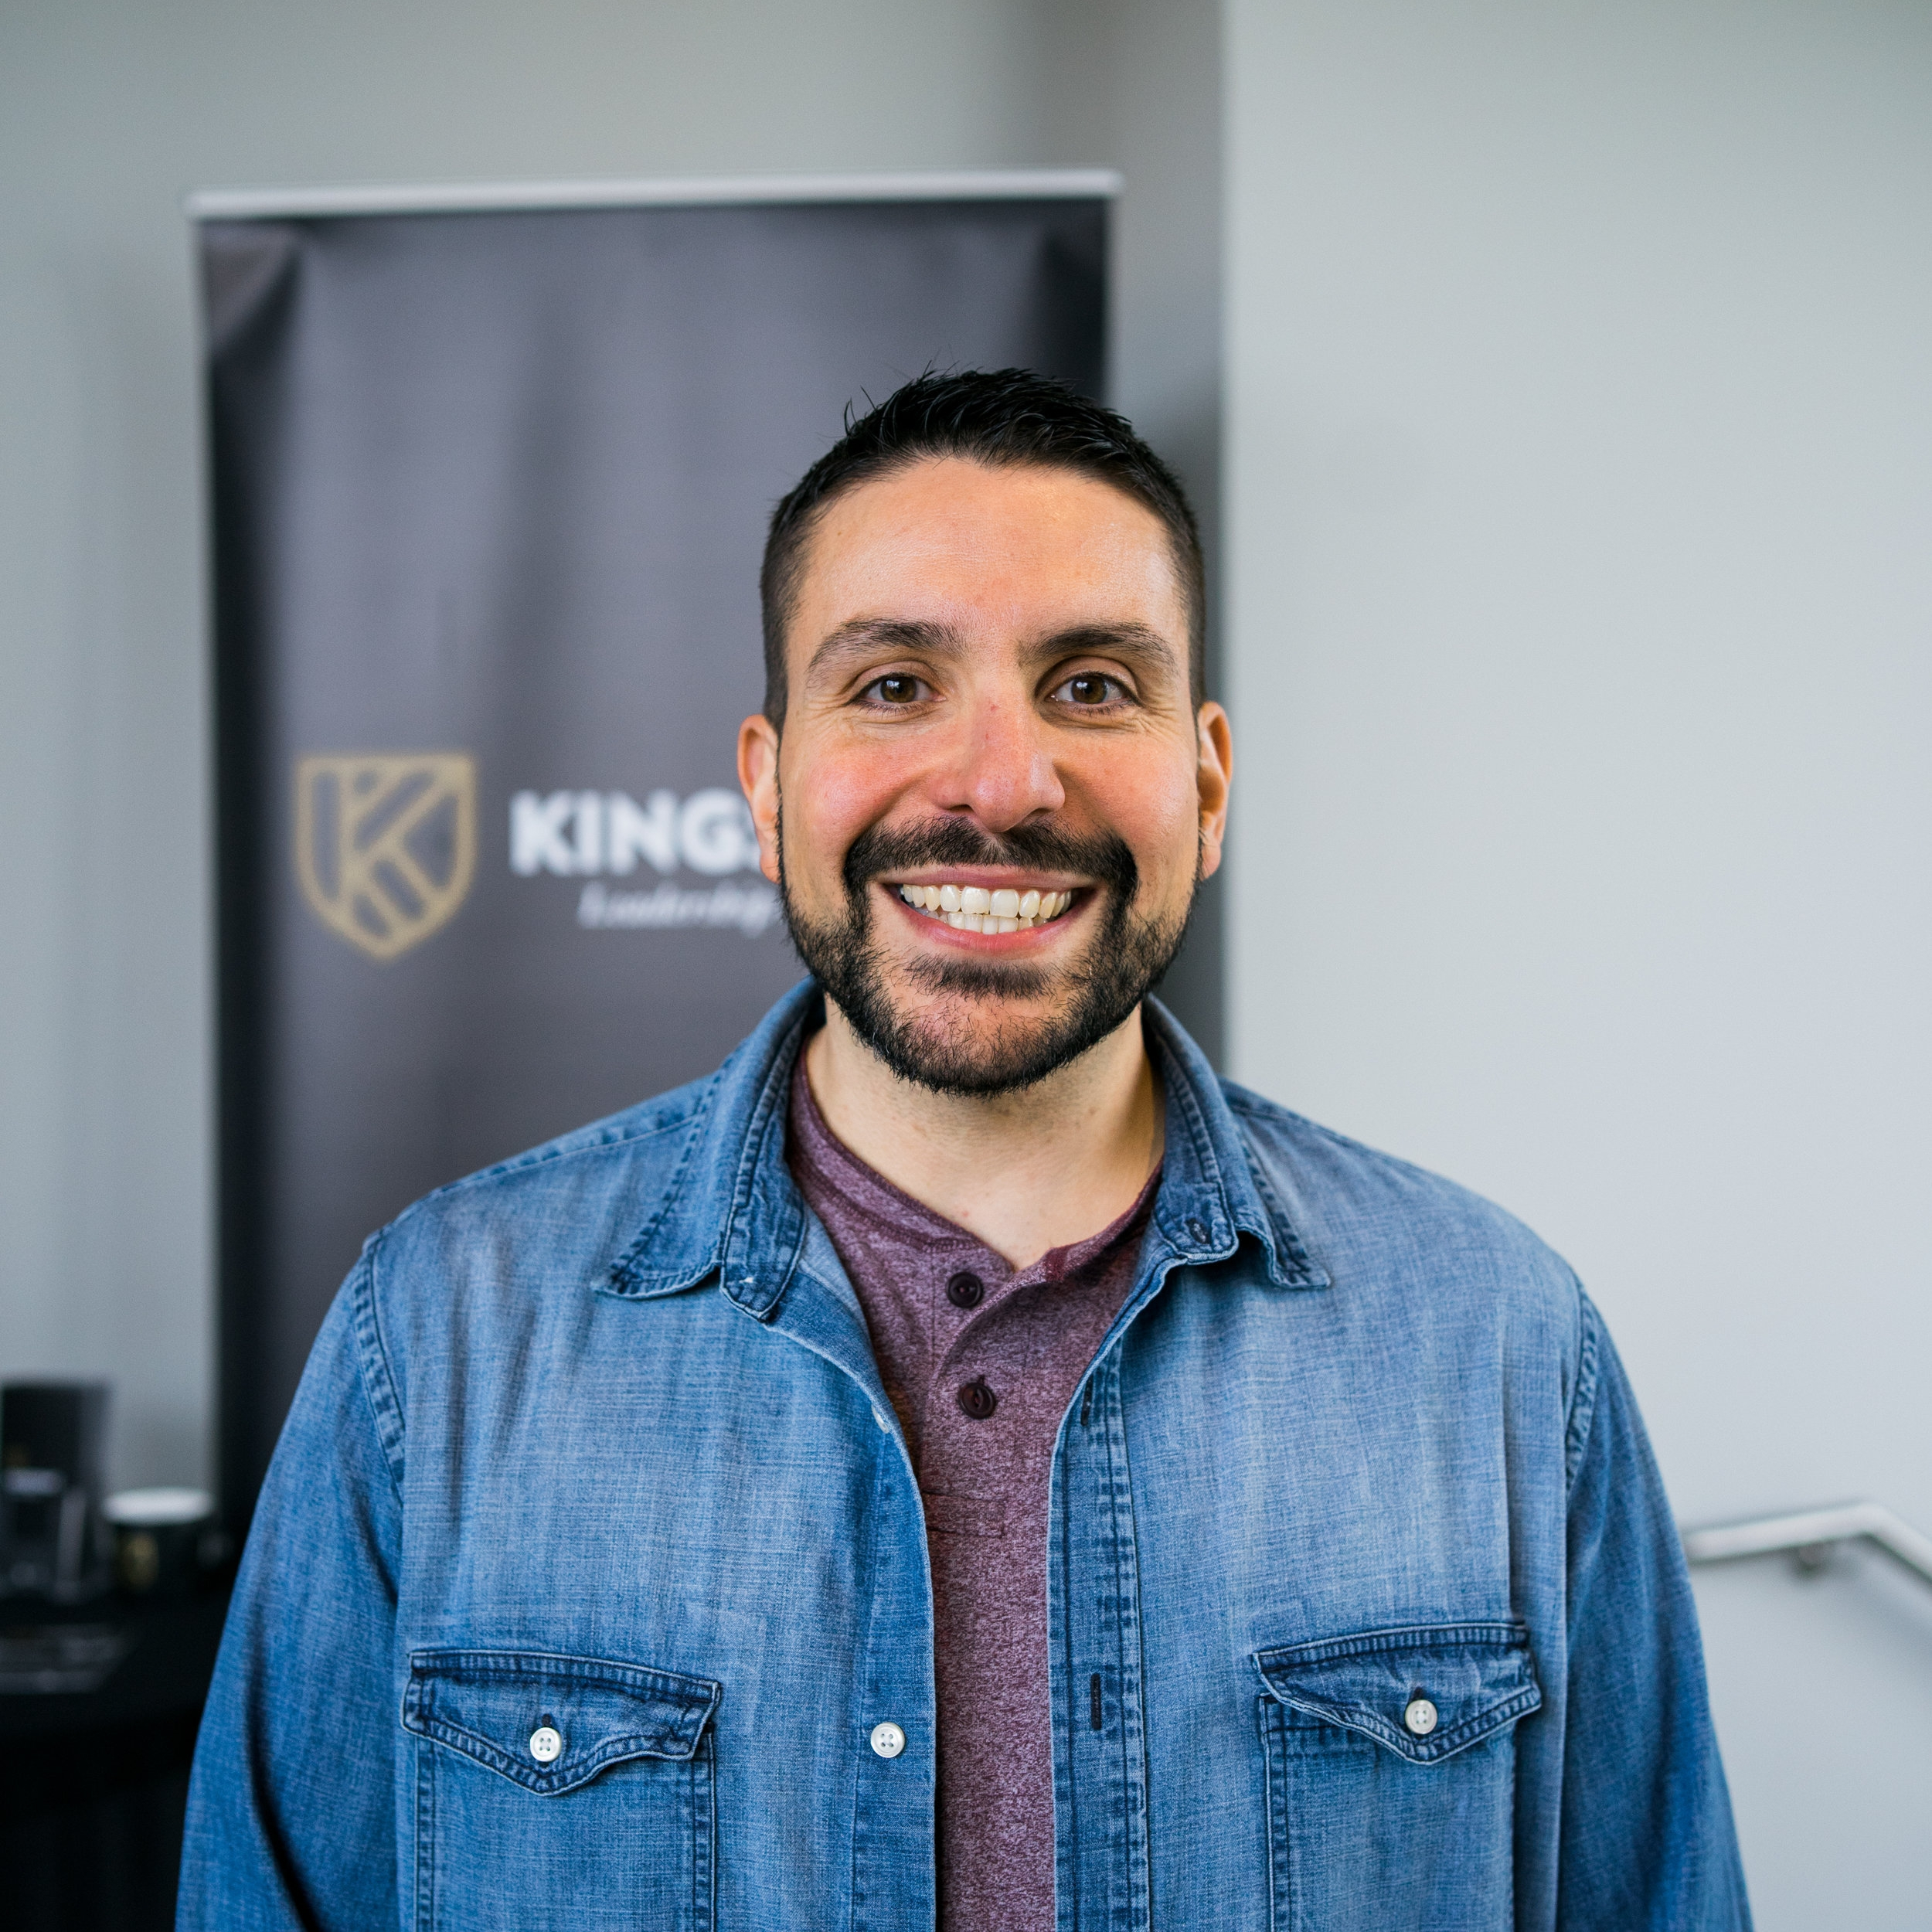 PhilCaporale - Phil is part of the pastoral team at Kingsway Church and serves as the director of Kingsway Leadership School. Part of his role is casting vision for the school and directing the KLS lead team.